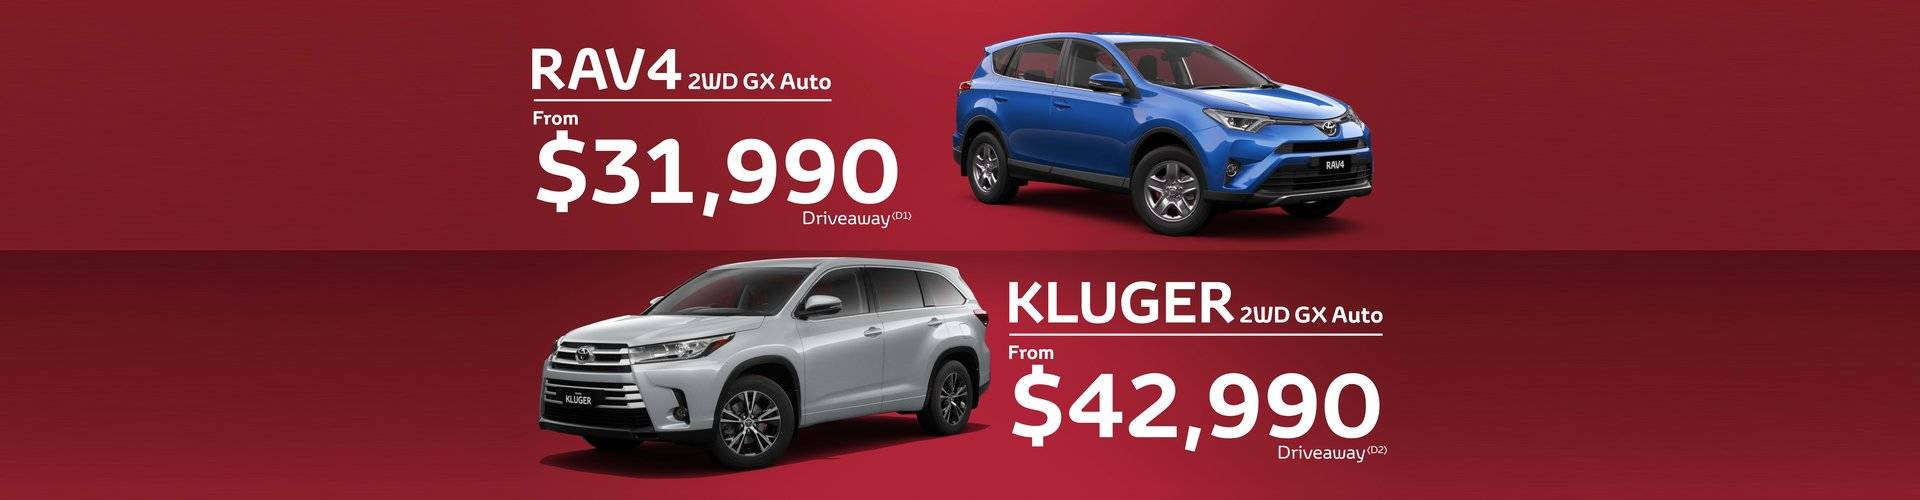 Toyota Means Business, great pricing on Kluger and Rav4